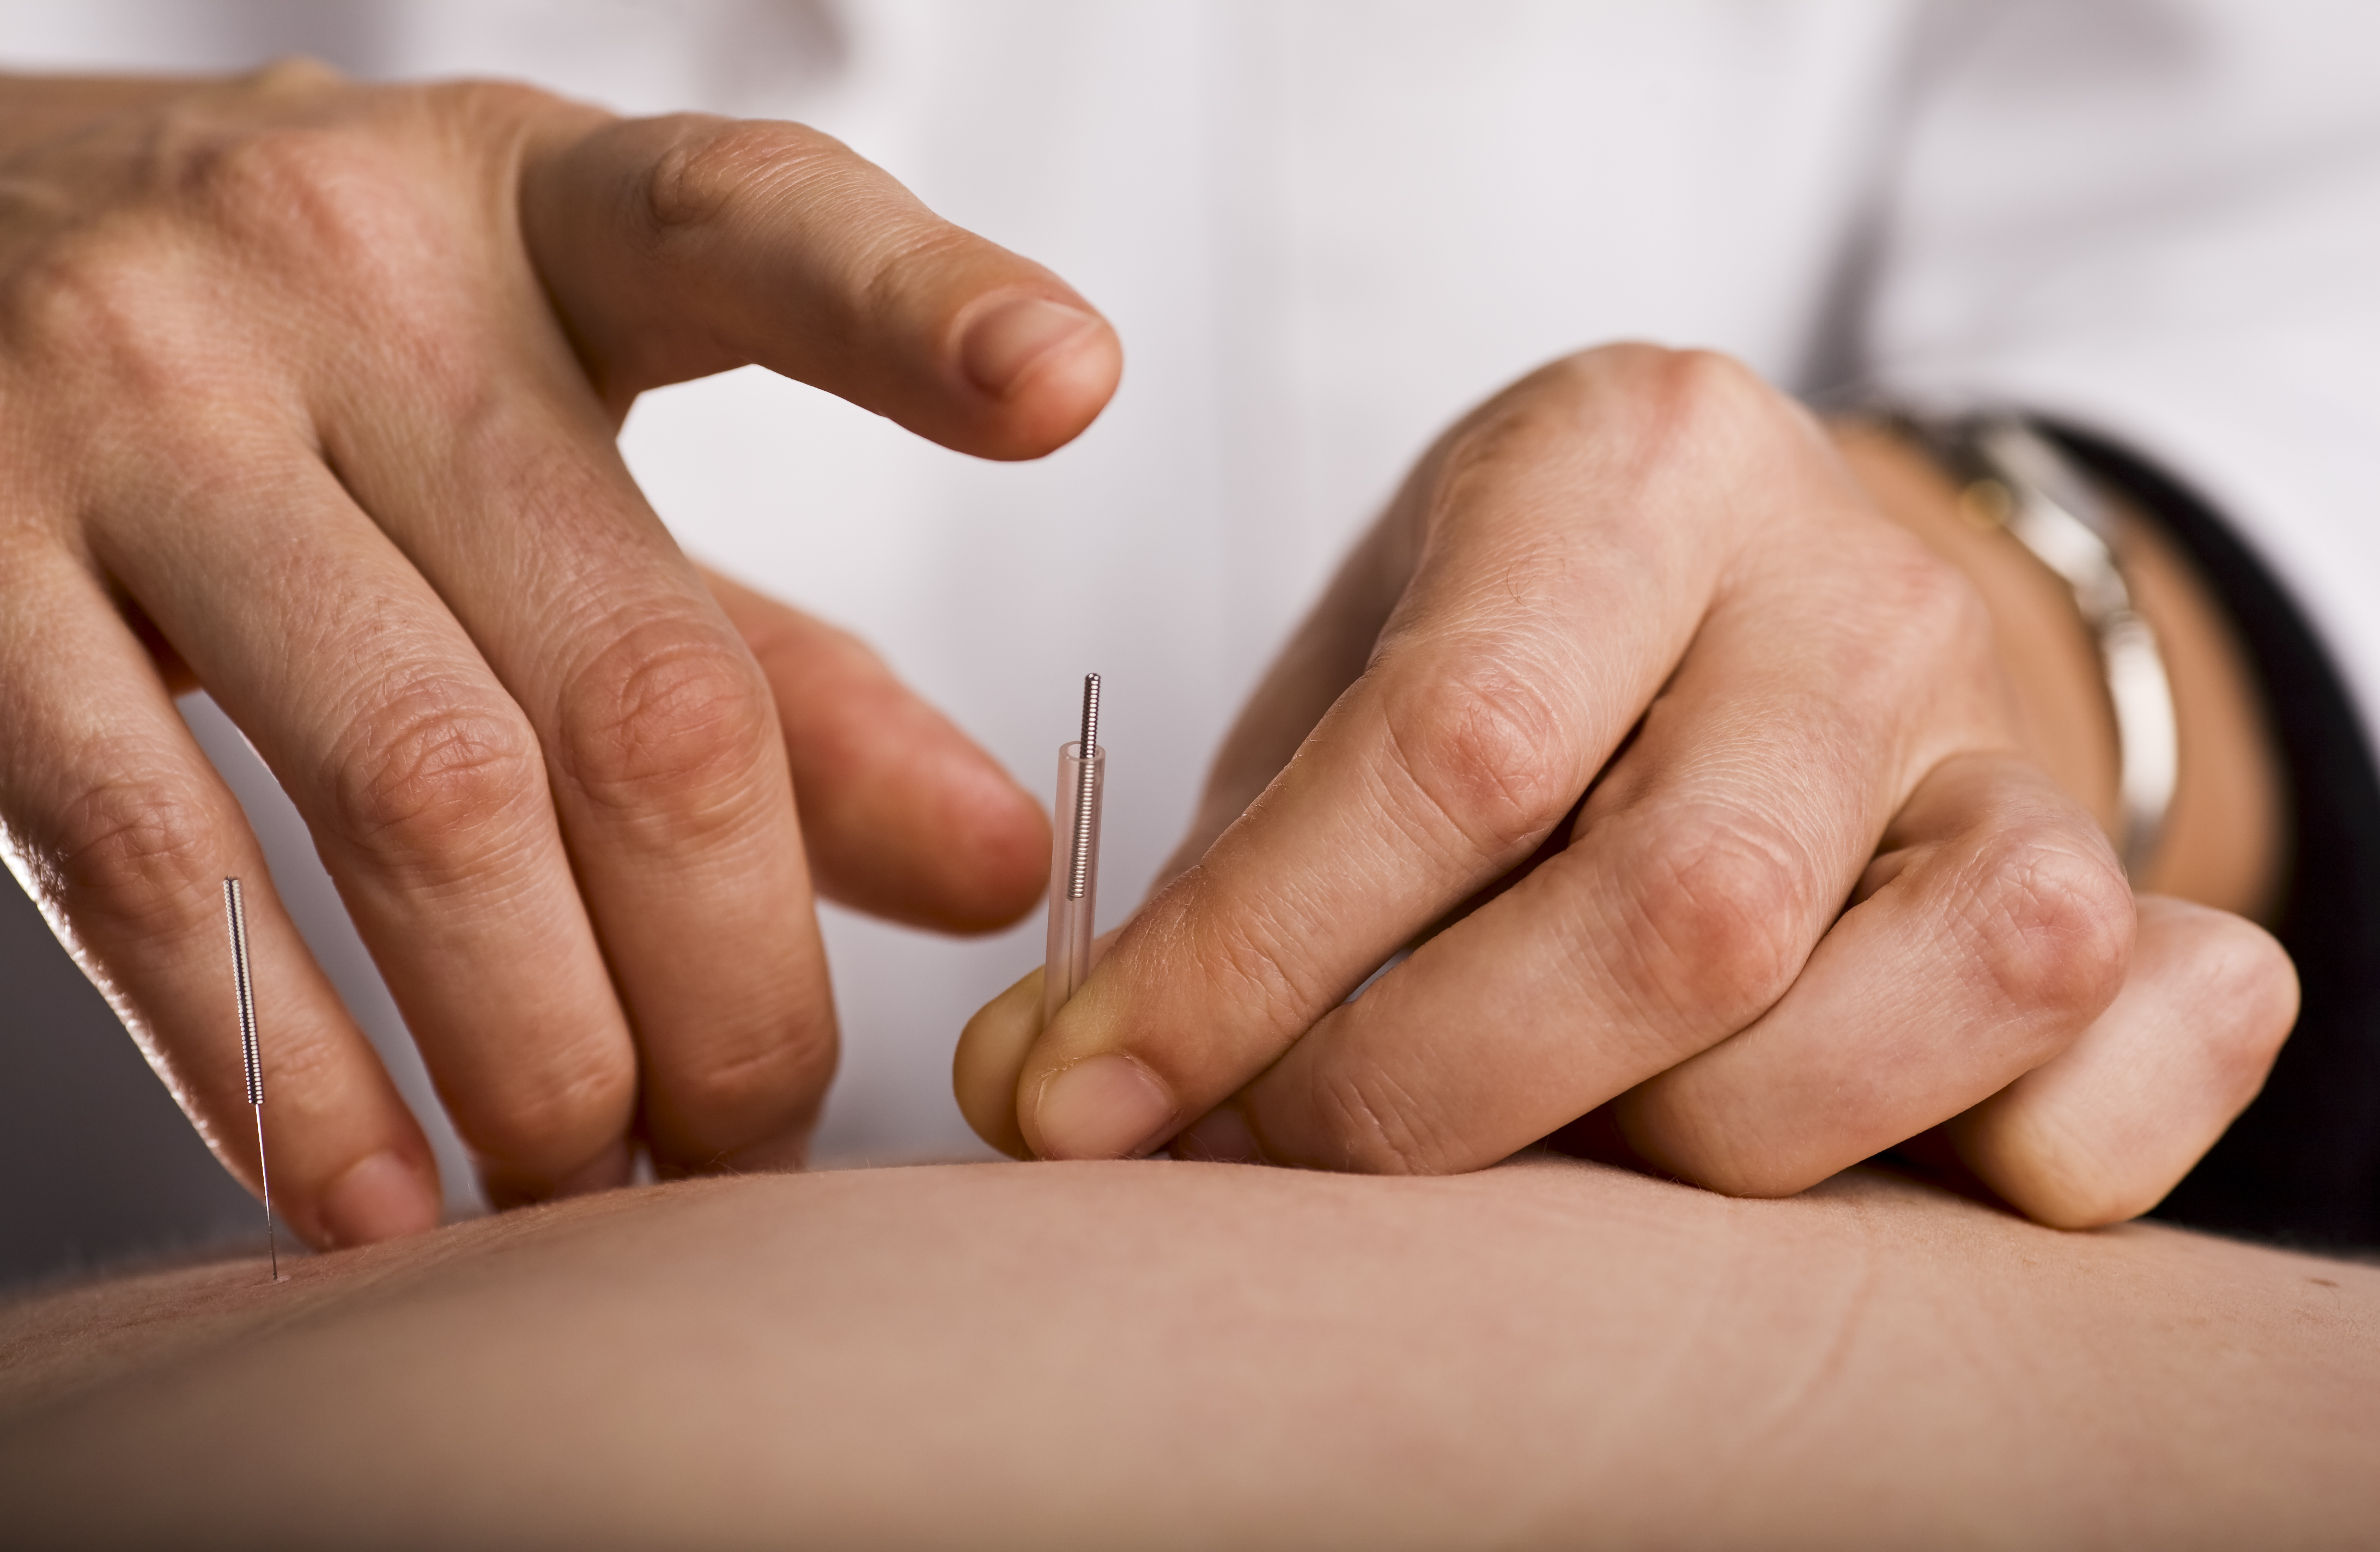 Acupuncture Can Improve Chronic Pain and Depression Treatment